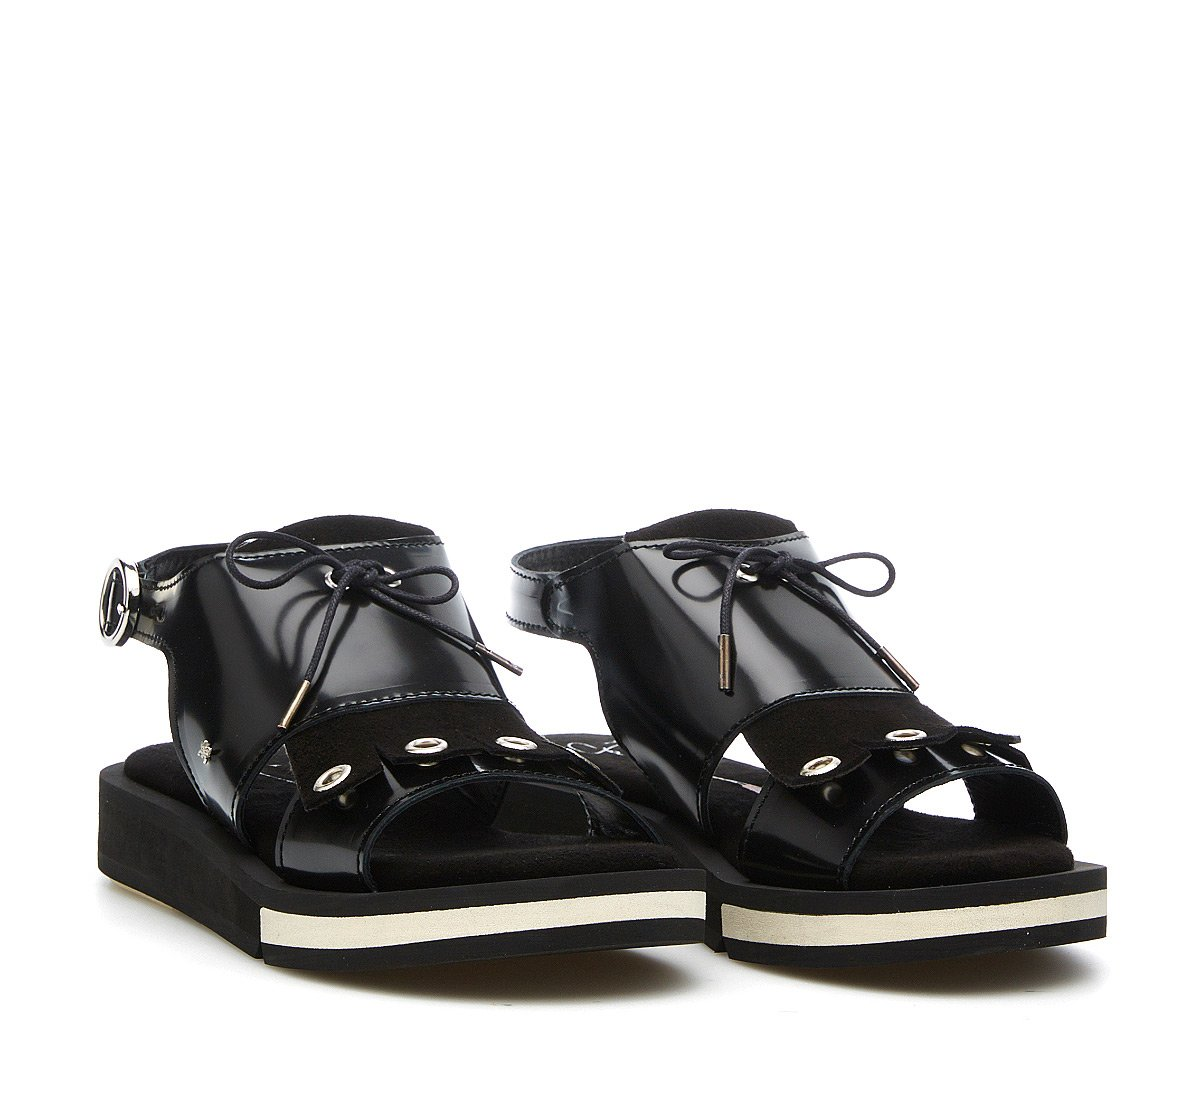 Calf leather sandals